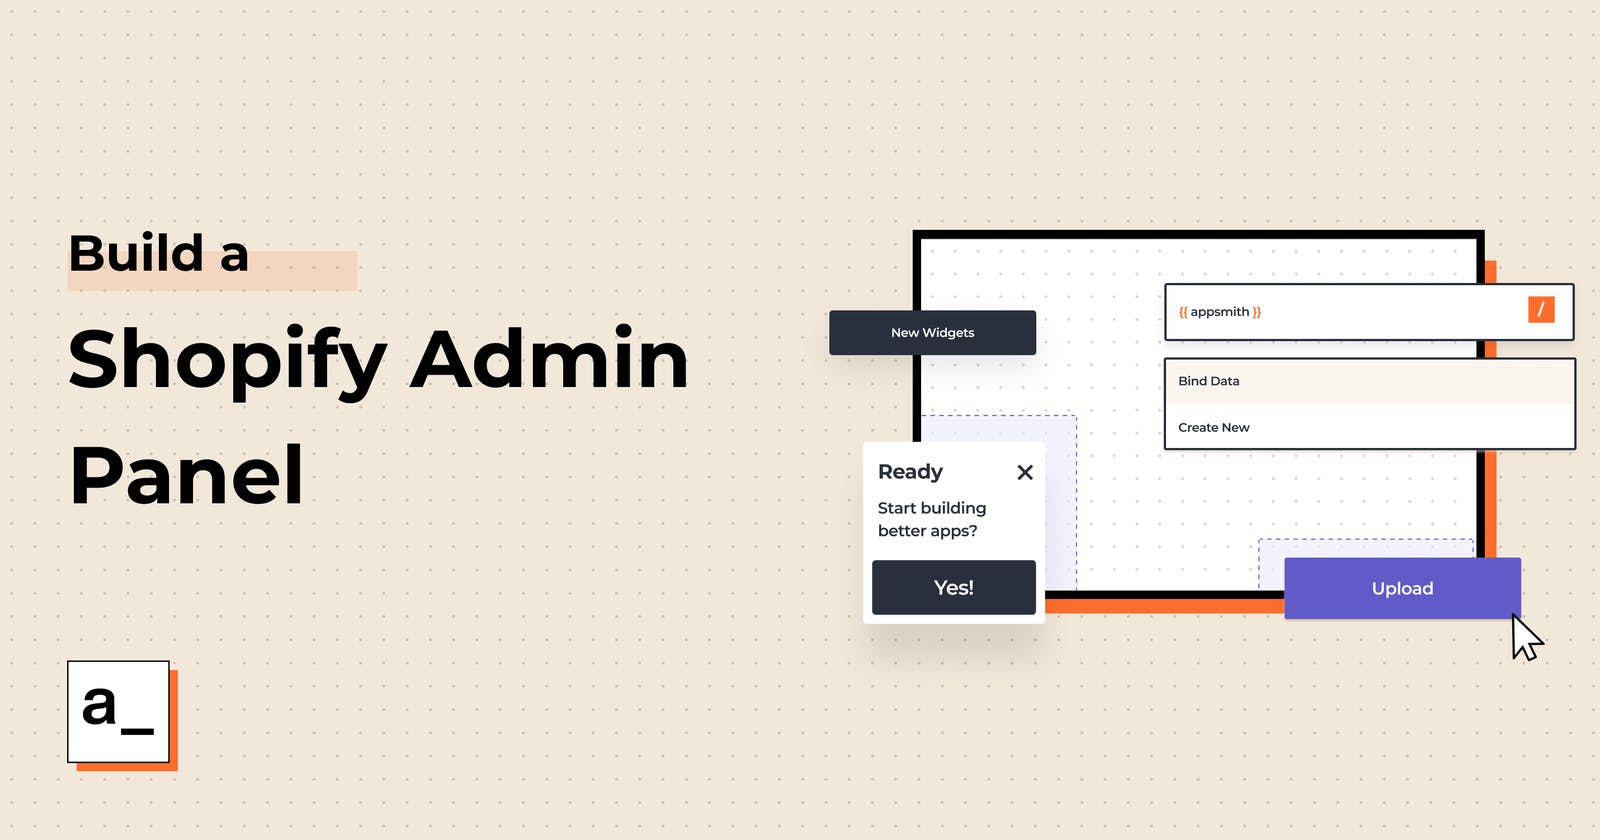 Building a Shopify Admin Panel: A Step by Step Guide